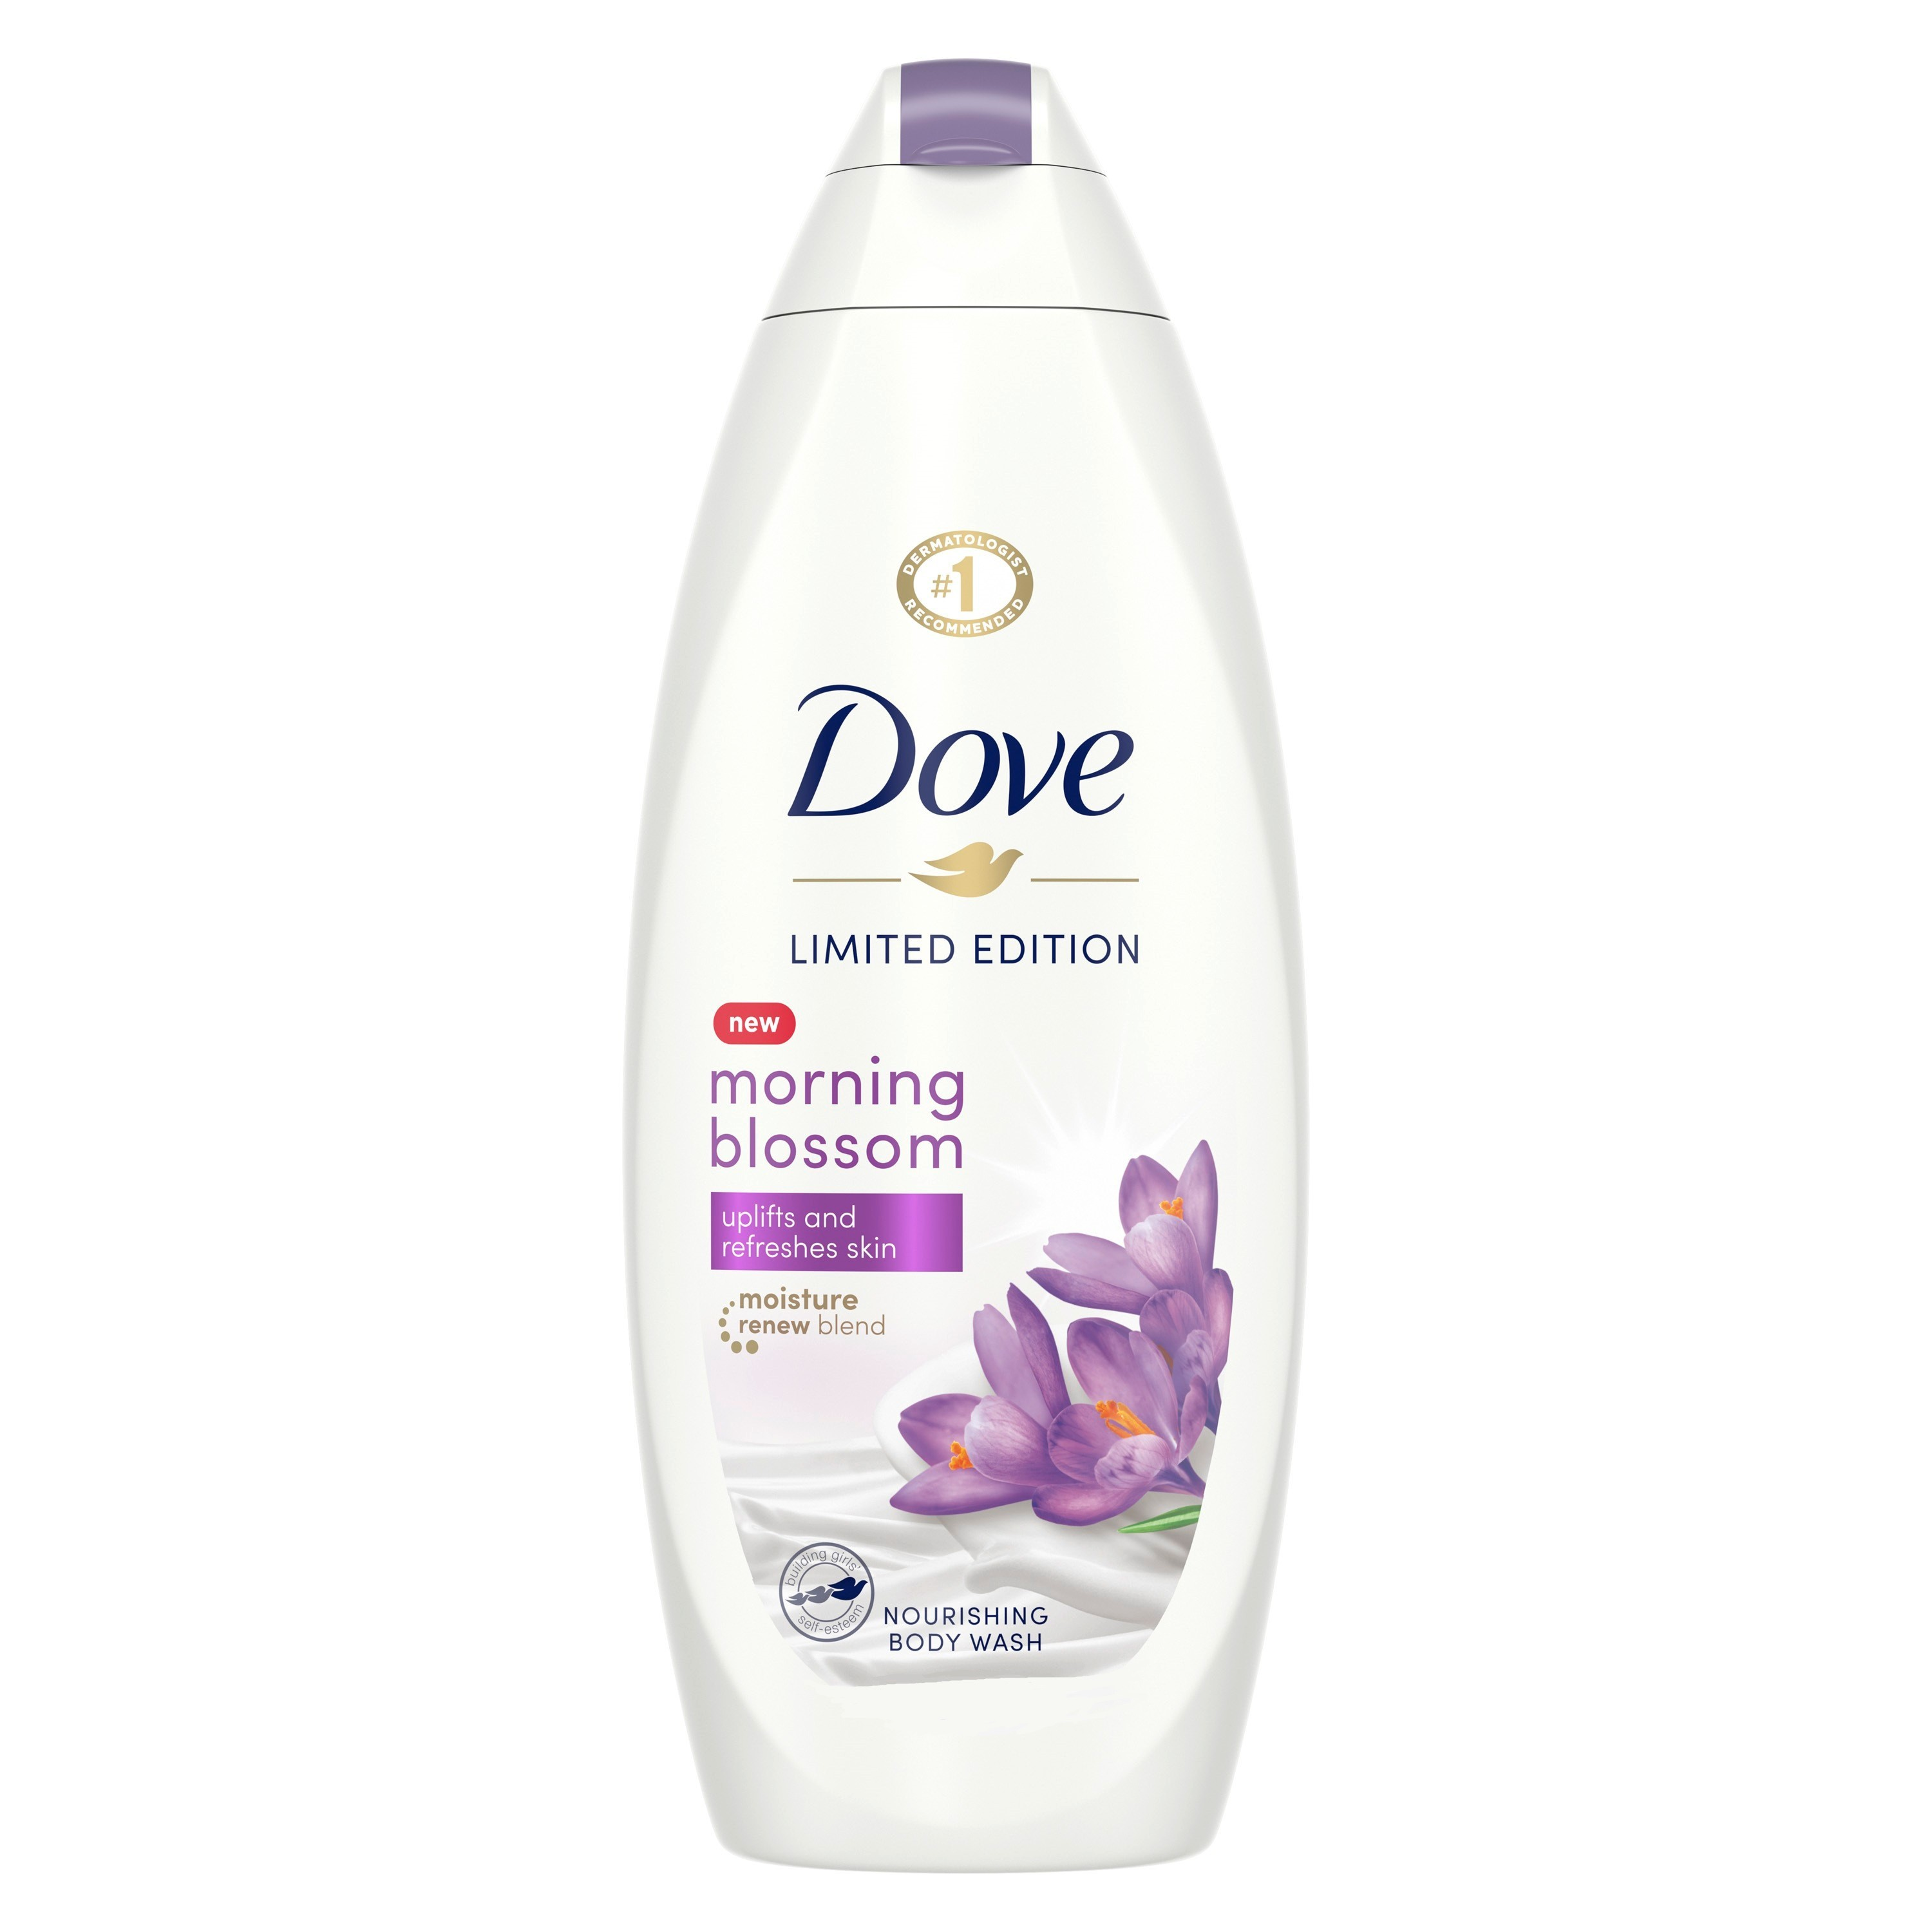 Dove Body Wash, 3,/600 Cases, Brand New, Ext. Retail $46,554, Newville, PA